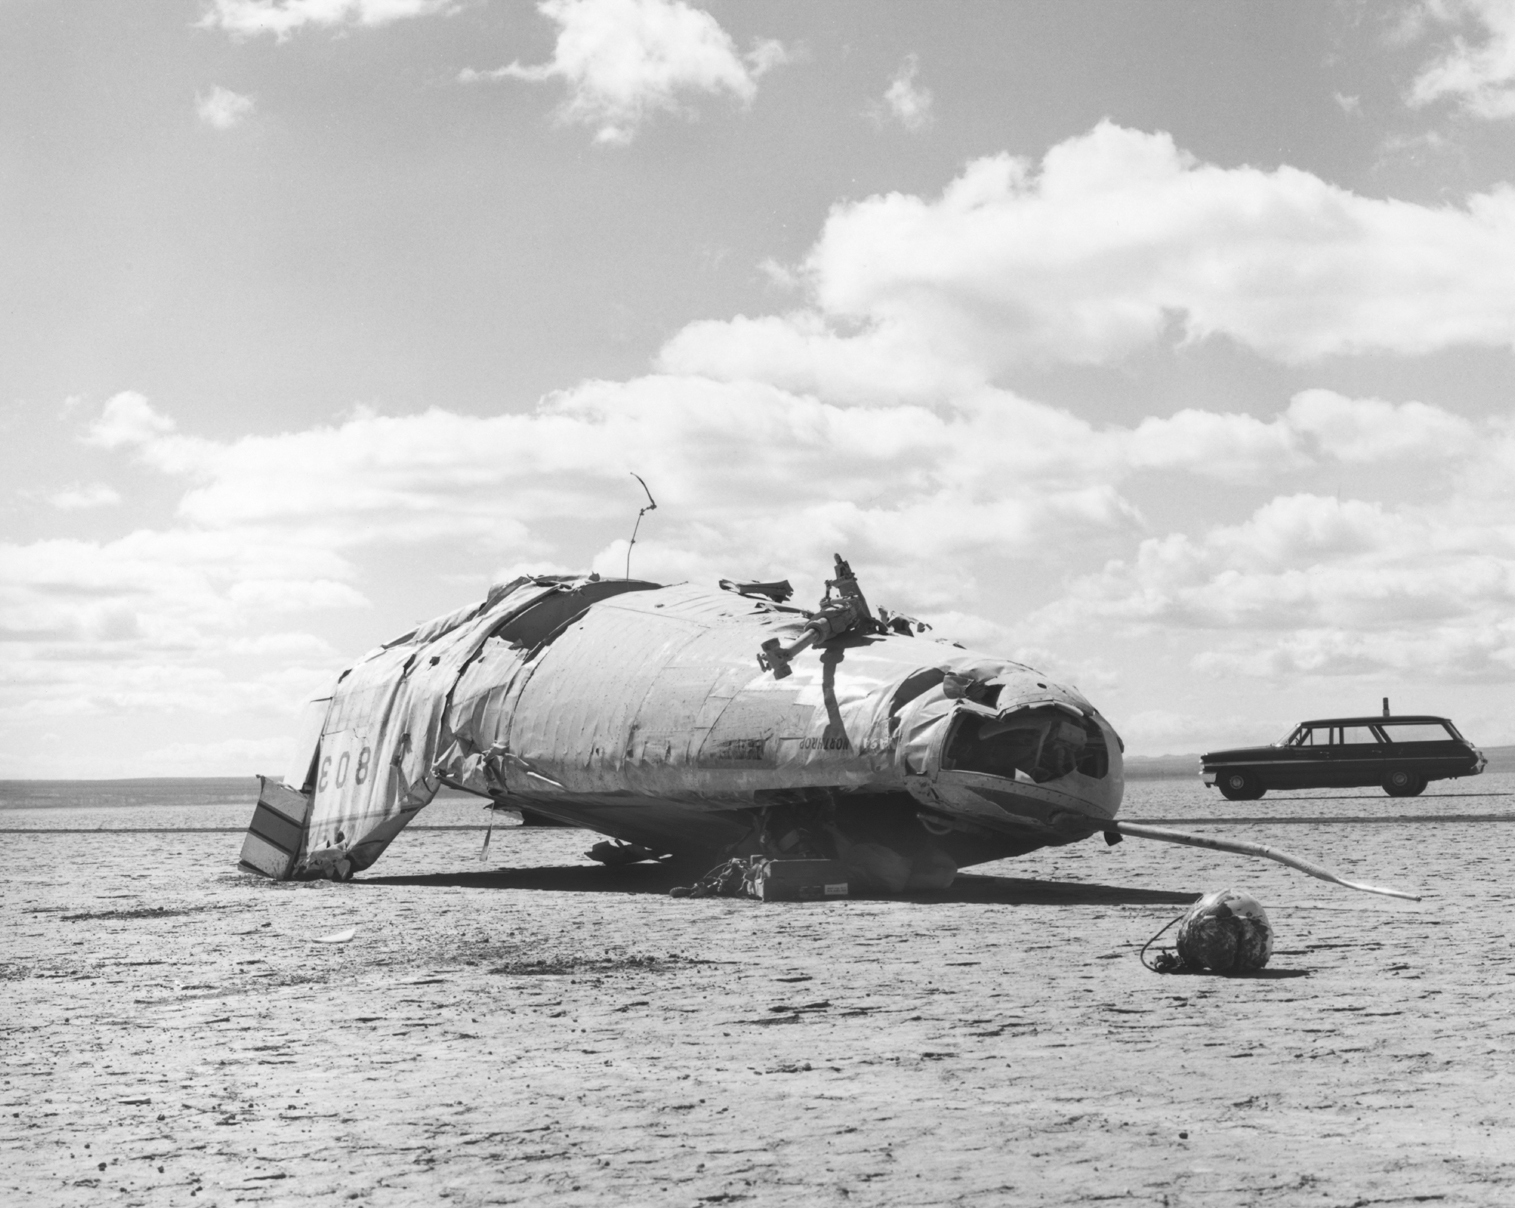 Space History Photo: M2-F2 Crash on Rogers Dry Lake